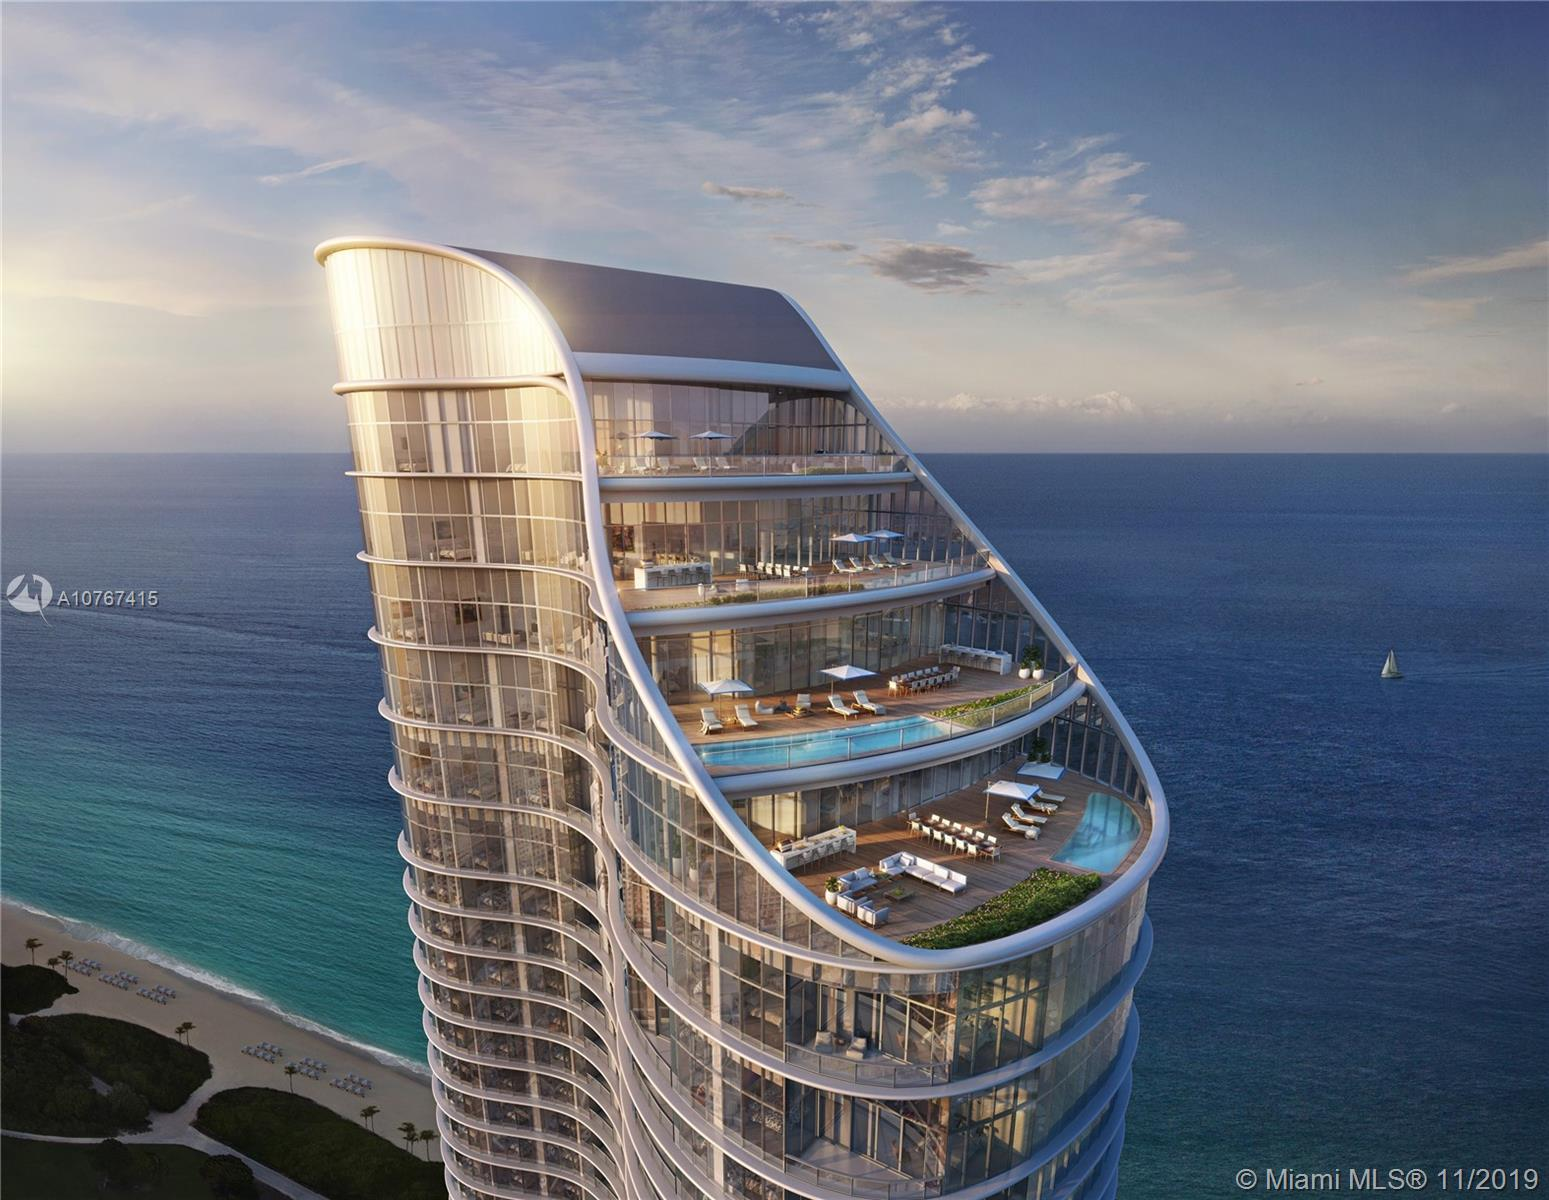 15701 Collins Ave, Unit #1605 Luxury Real Estate